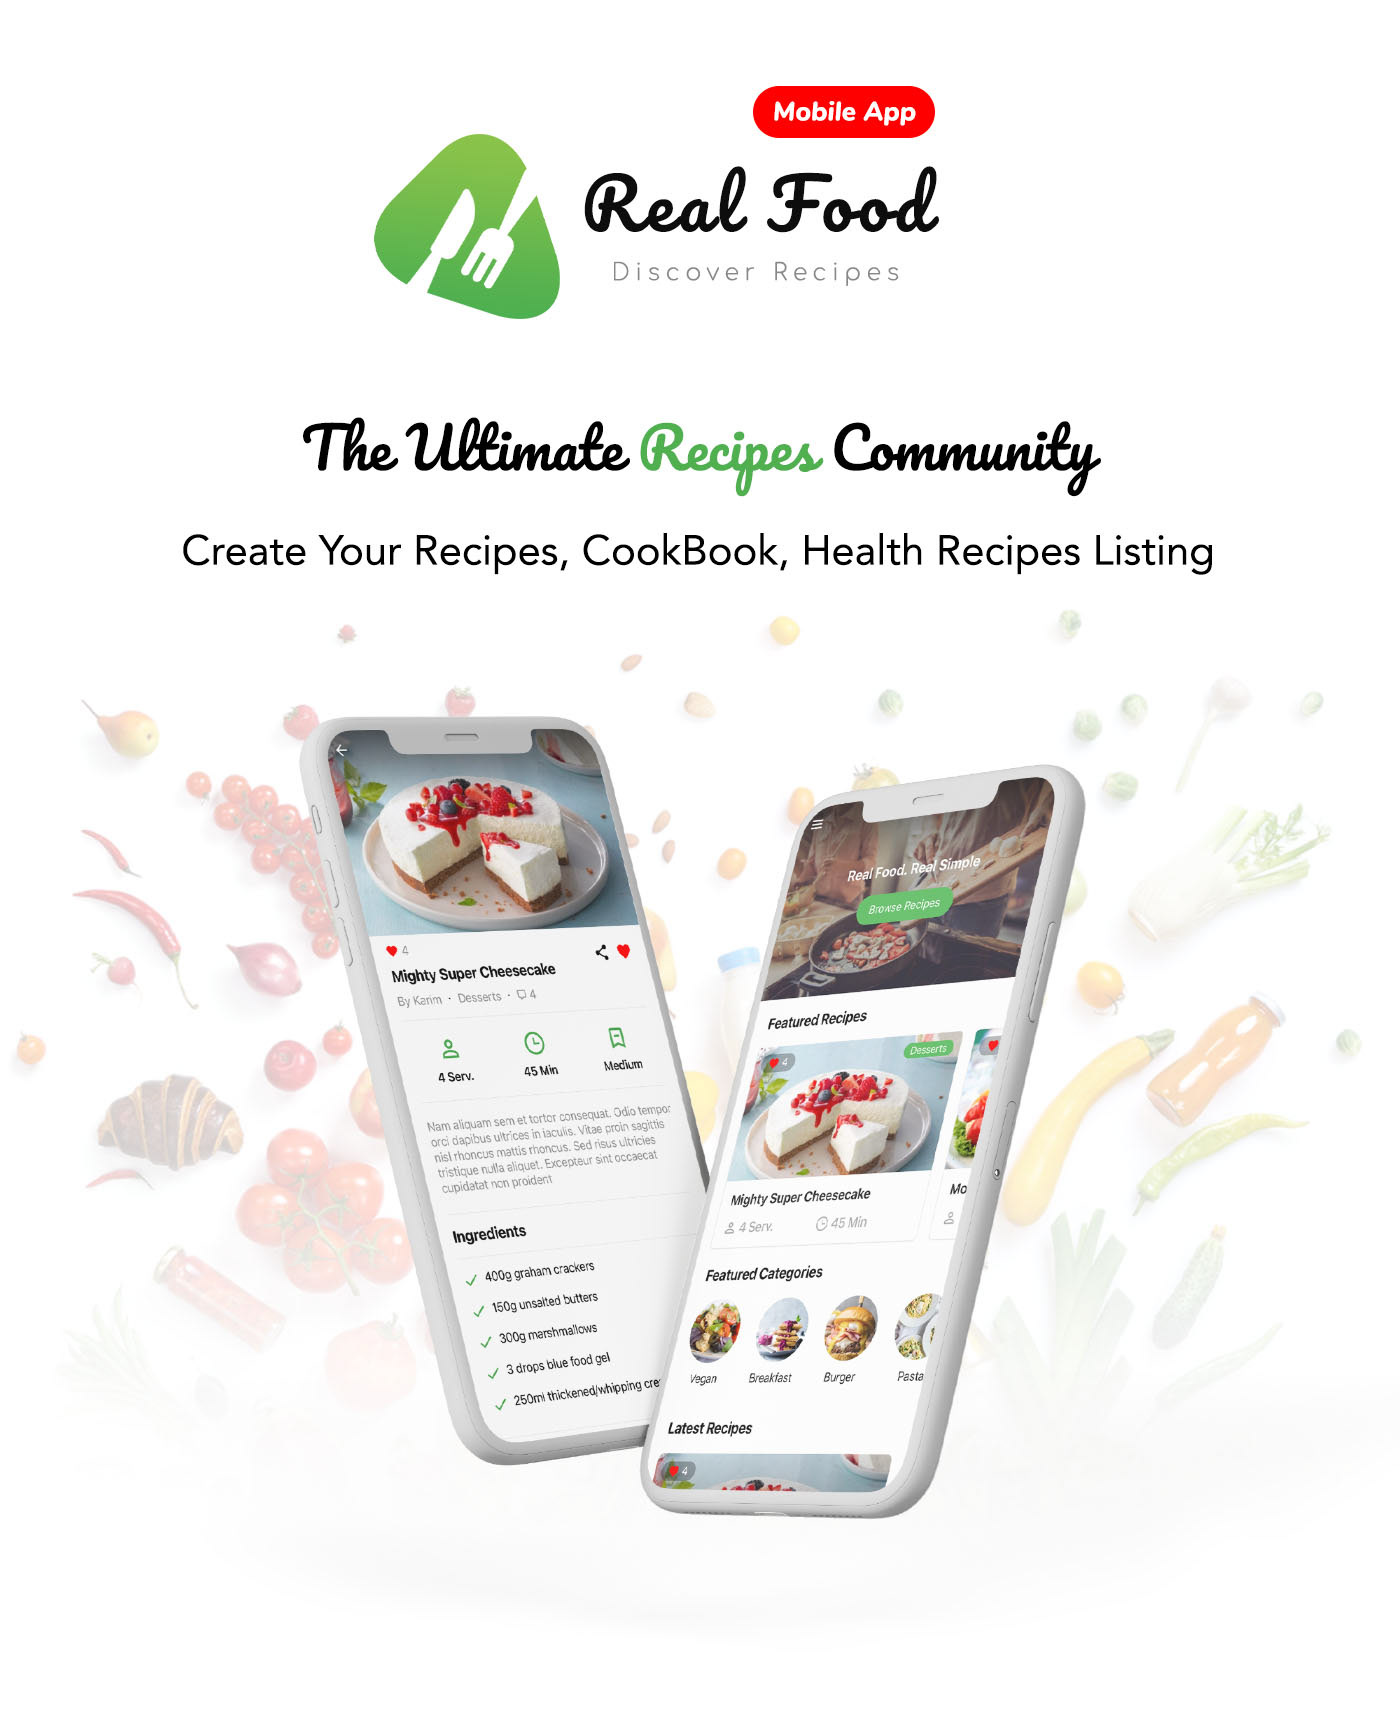 RealFood Mobile   React Native Recipes & Community Food - 2